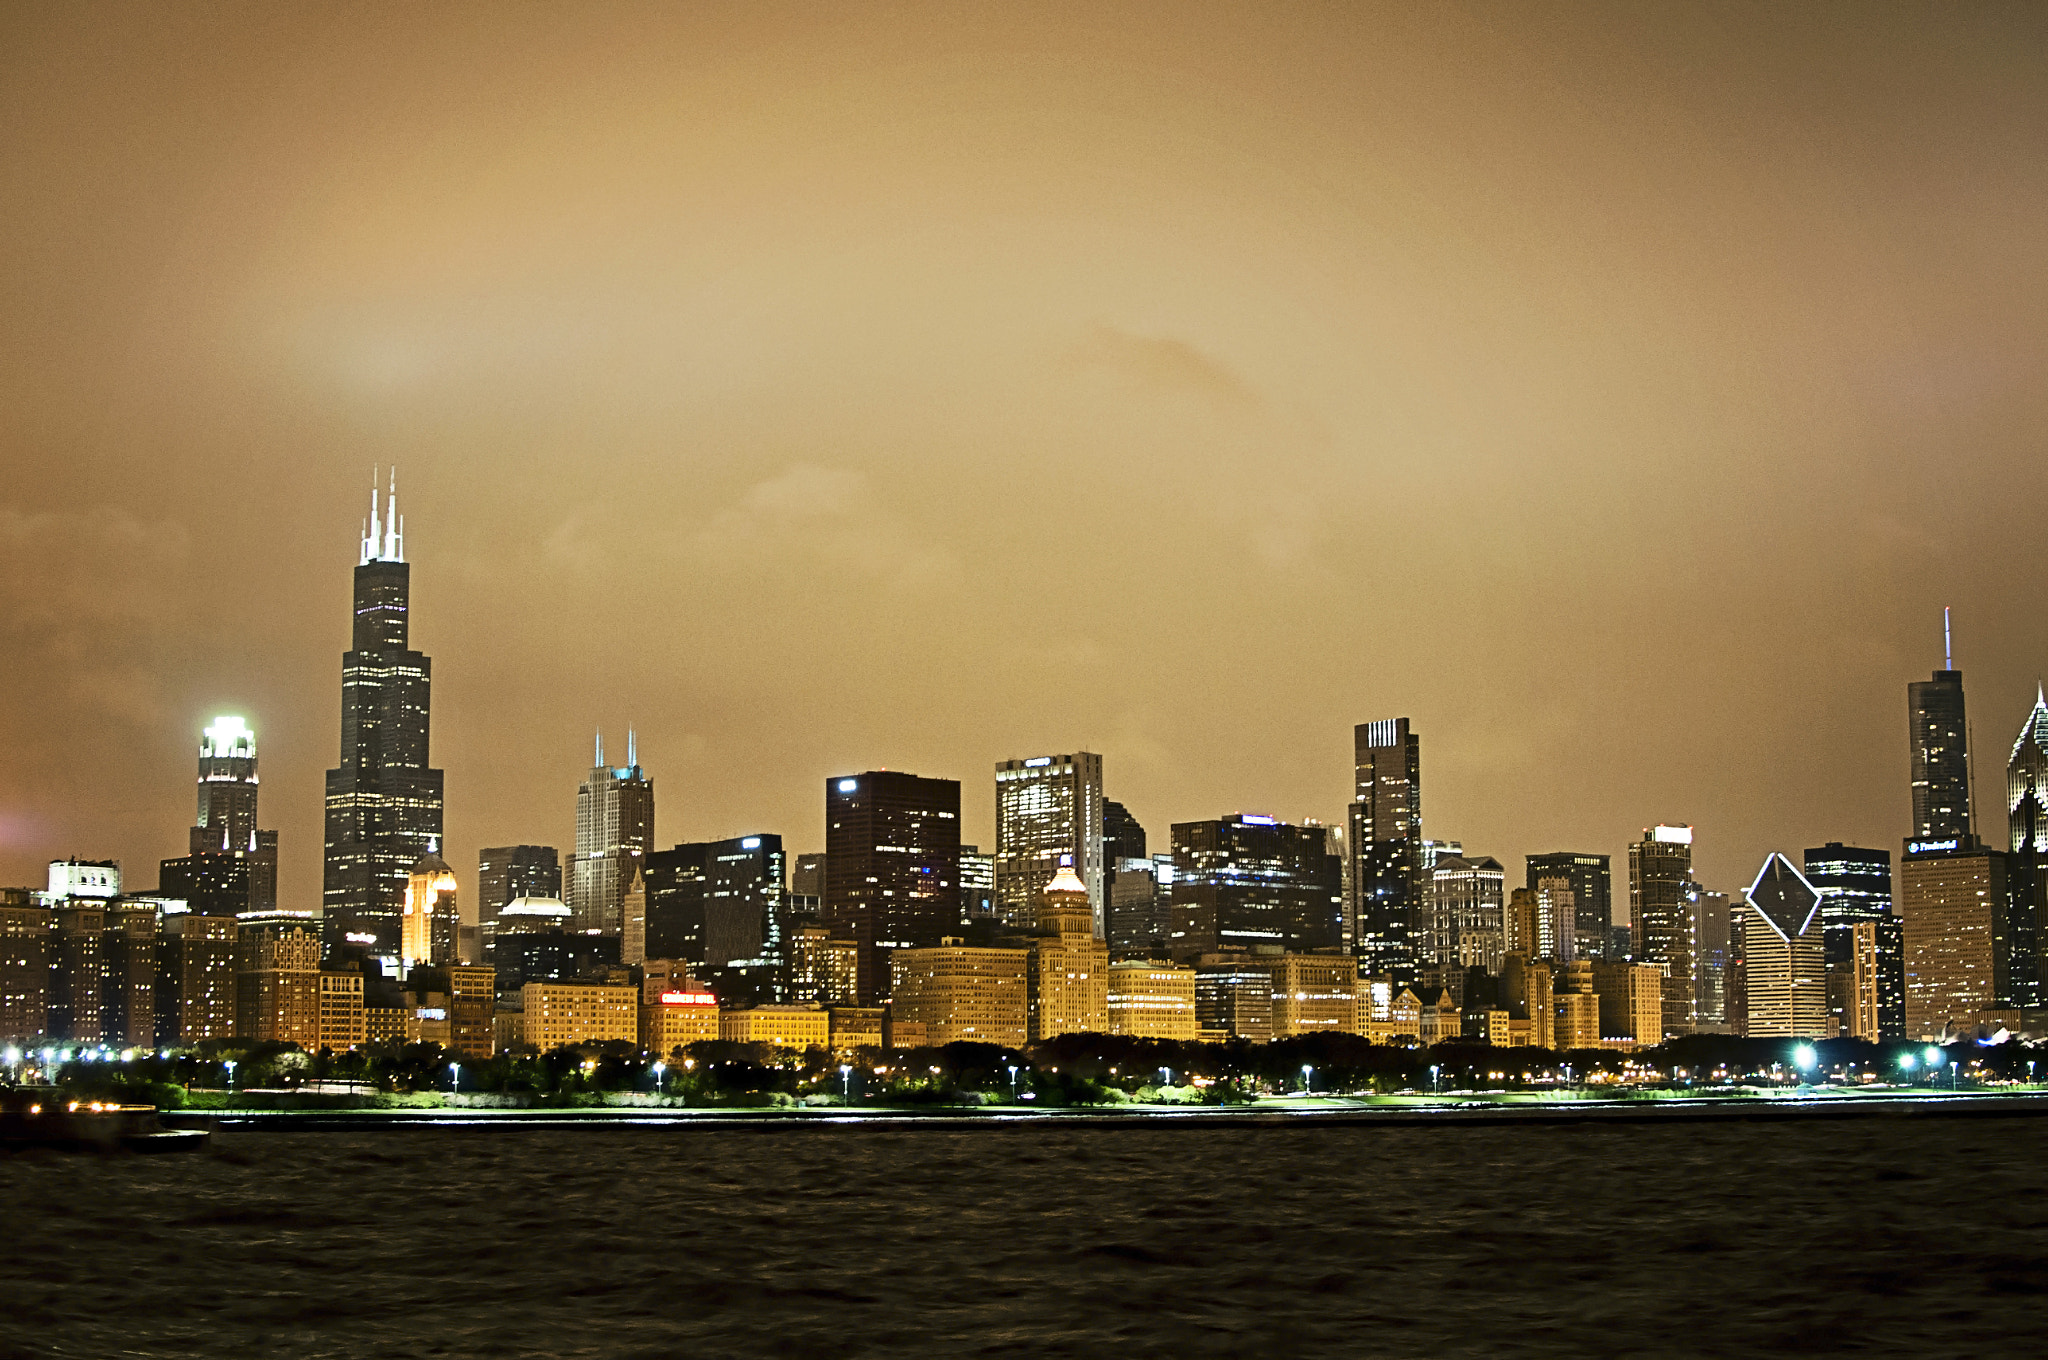 Photograph Chicago by Elizabeth Weitz on 500px